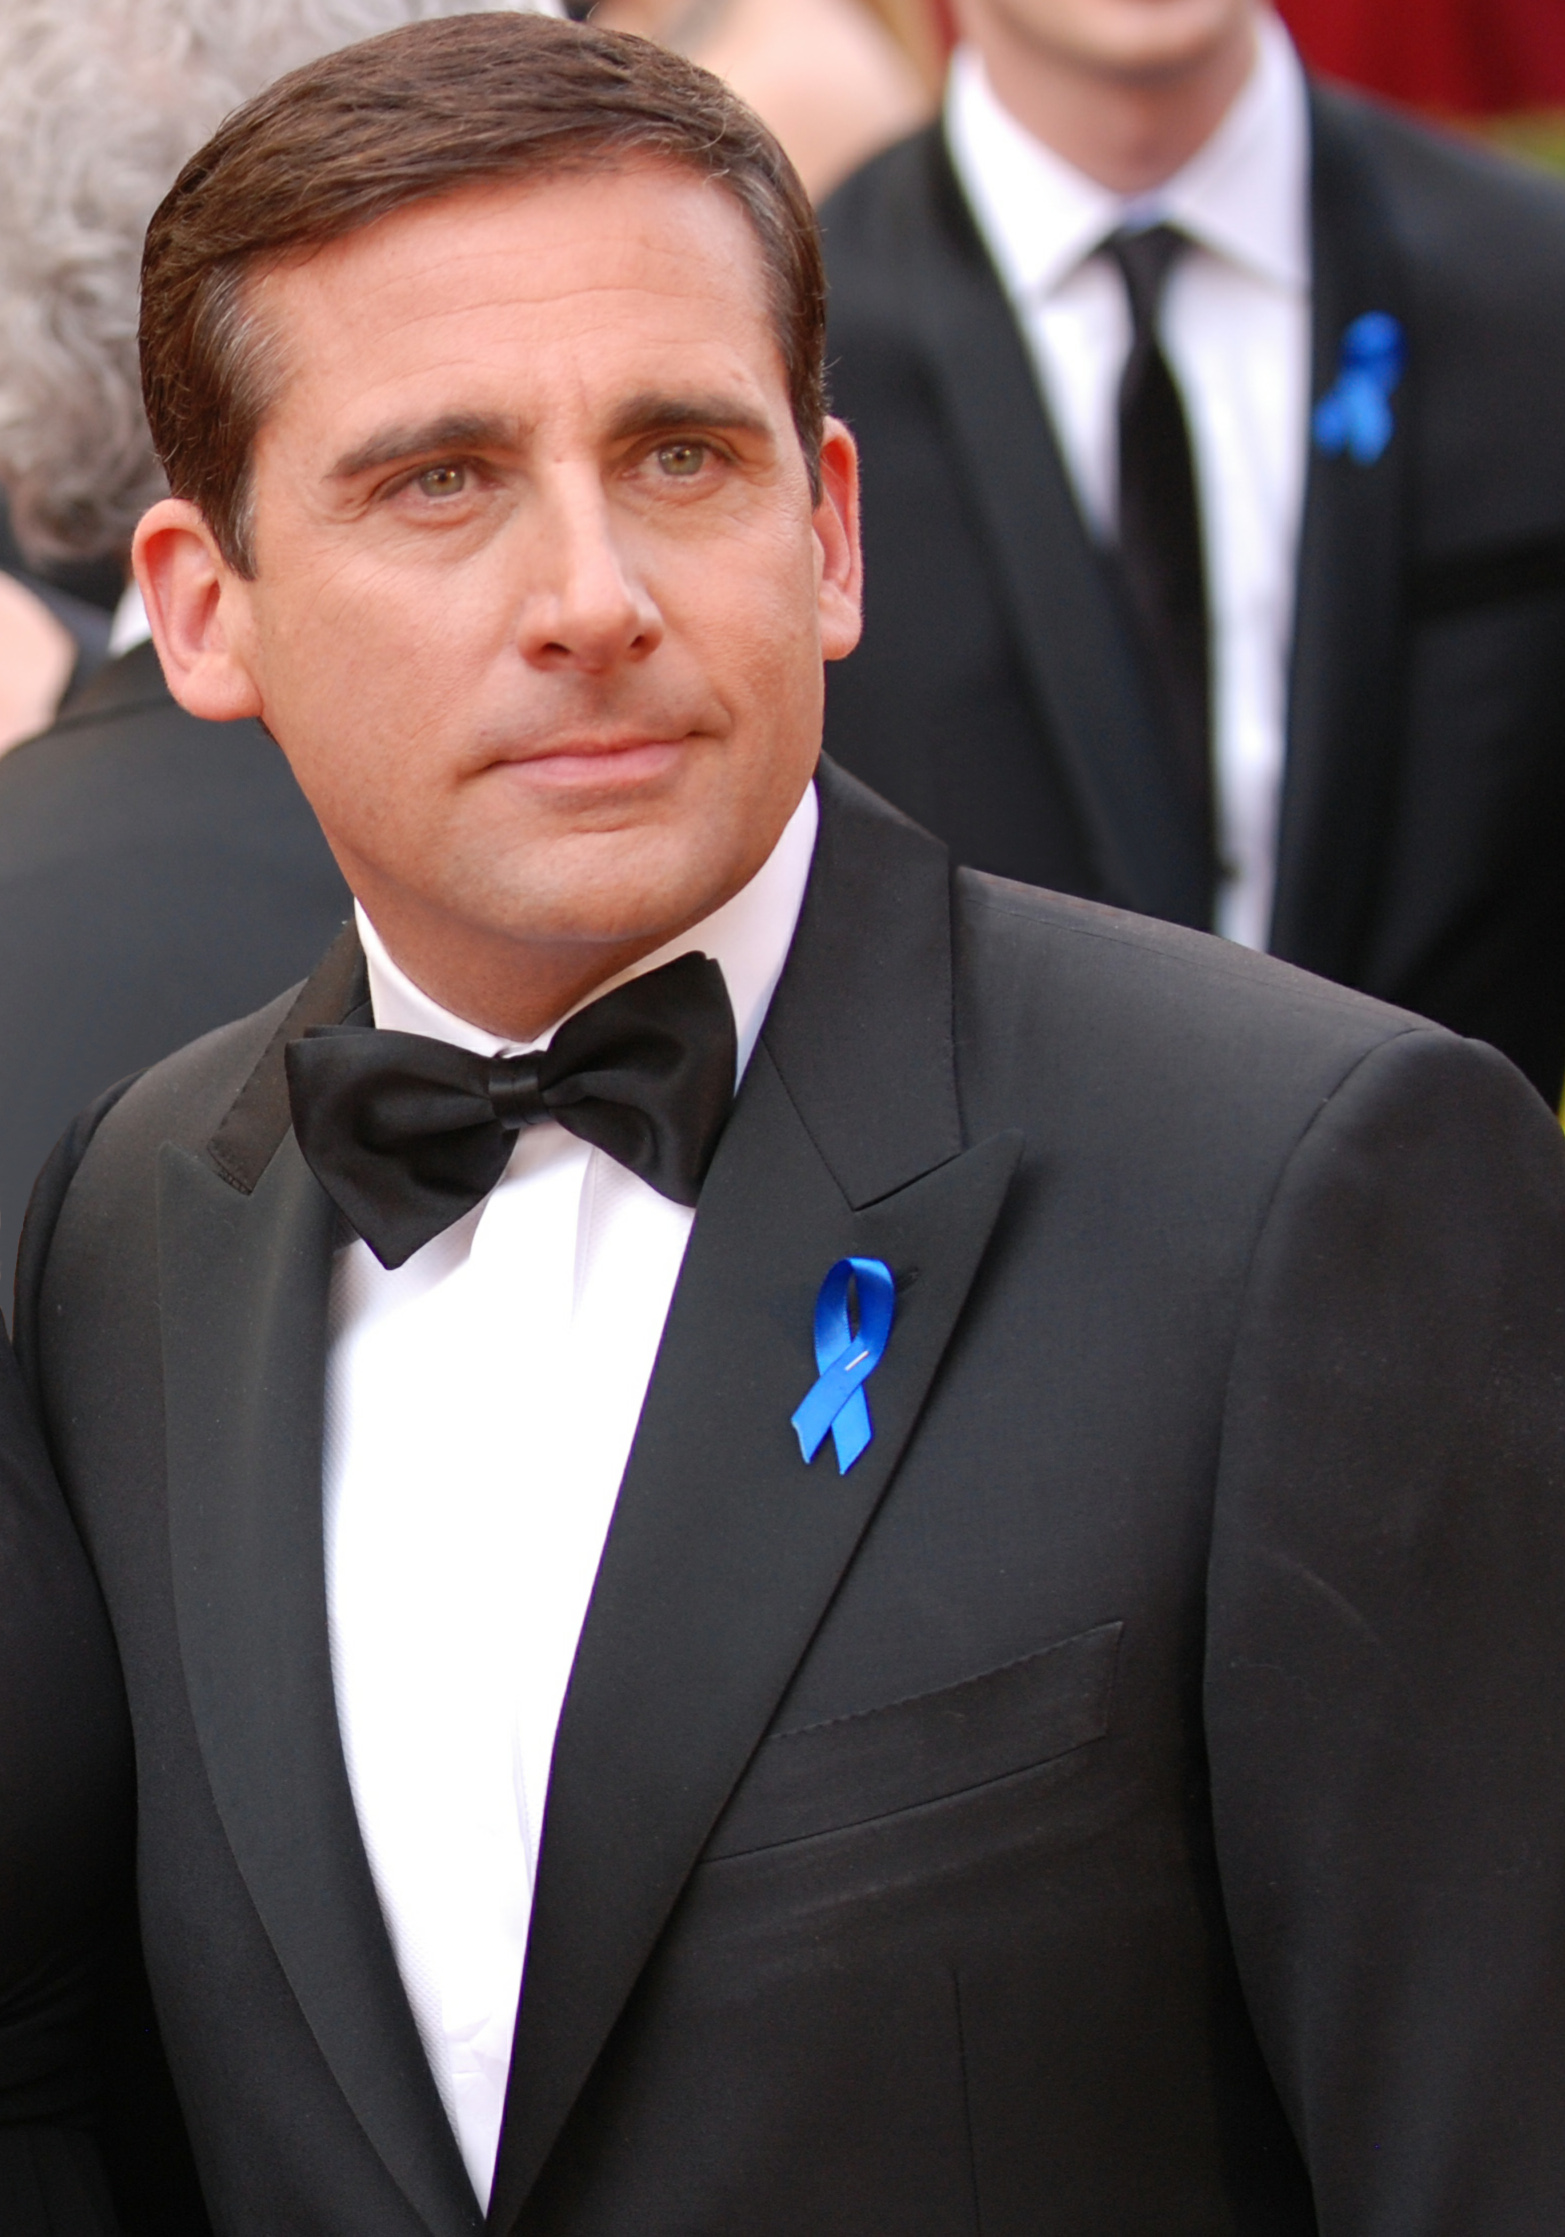 Michael Scott Wikipedia Portrays Michael Scott in